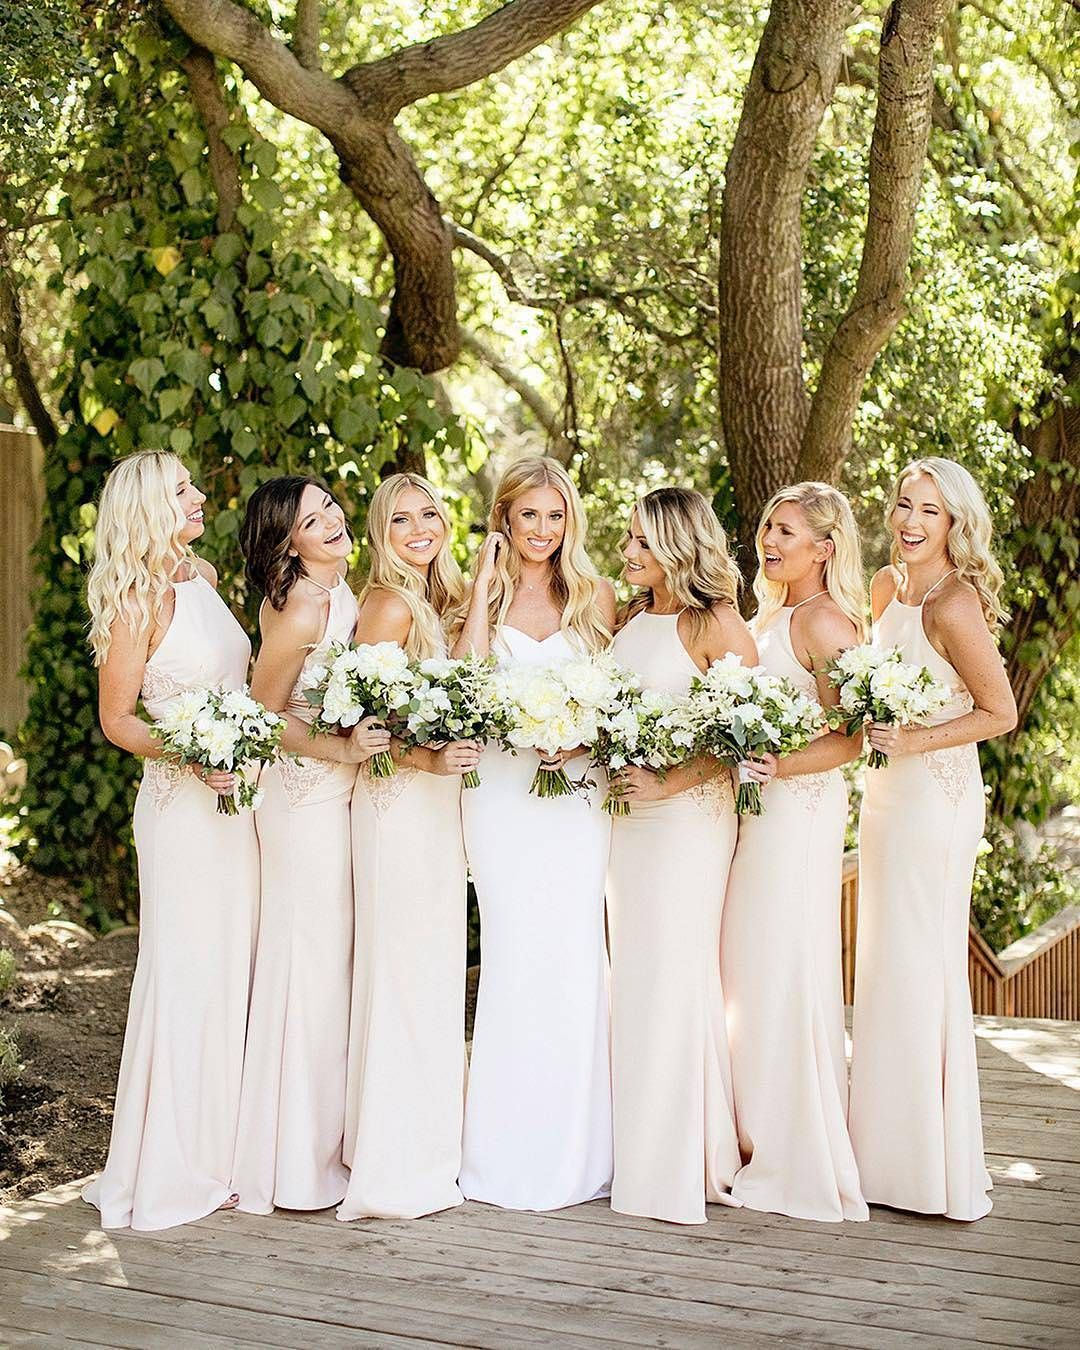 Bridesmaids dresses neutral tones everything wedding pinterest bridesmaids dresses neutral tones ombrellifo Images